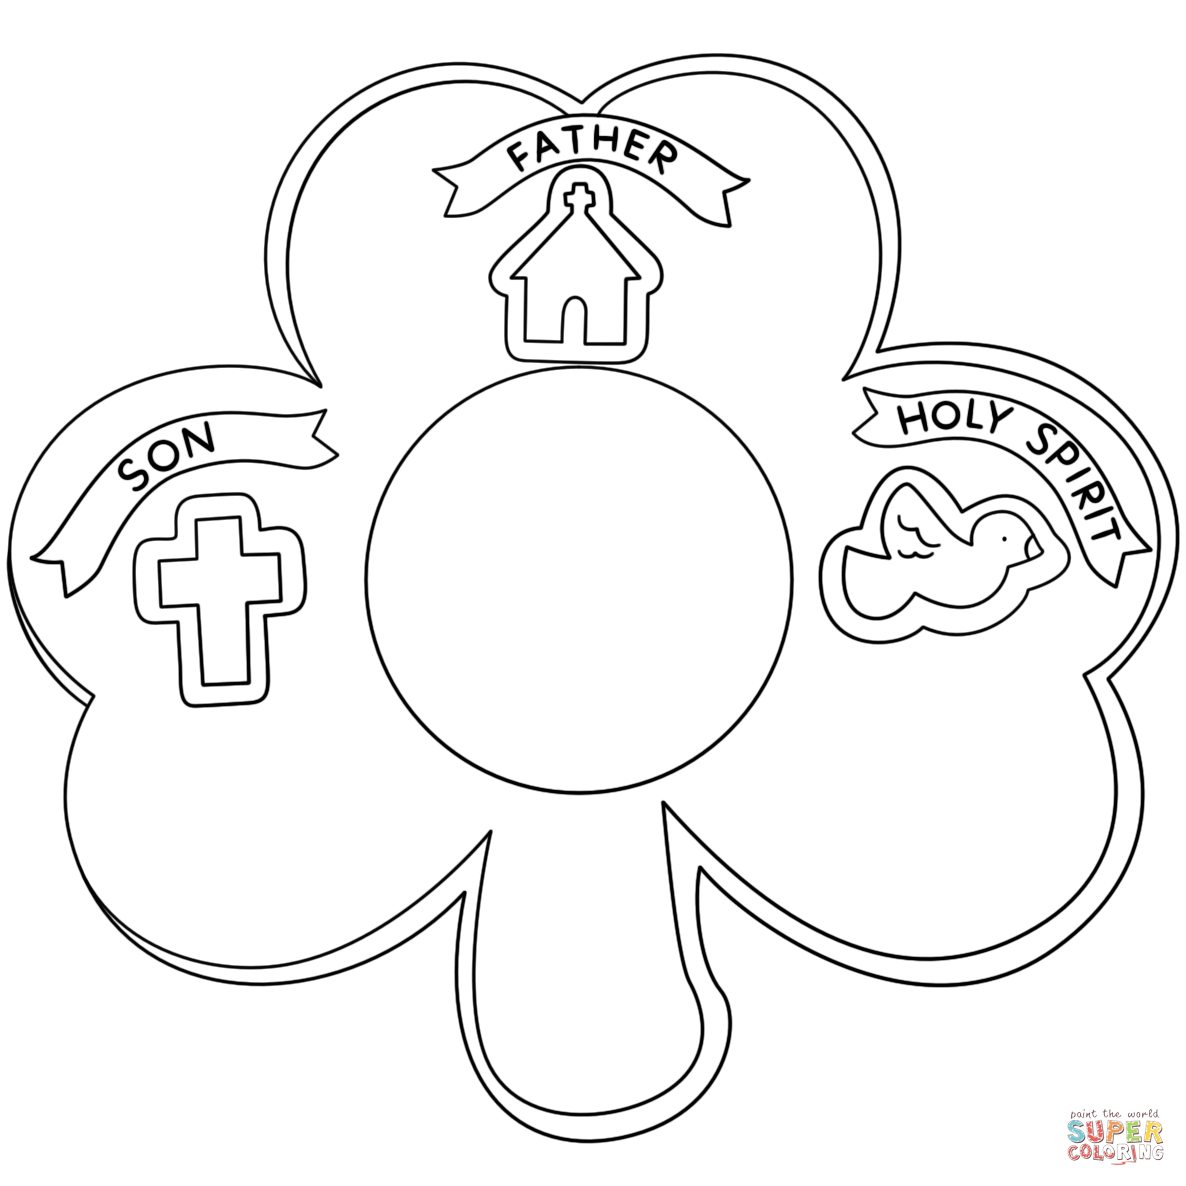 Shamrock Holy Trinity Coloring Page | Free Printable Coloring Pages - Free Printable Shamrocks